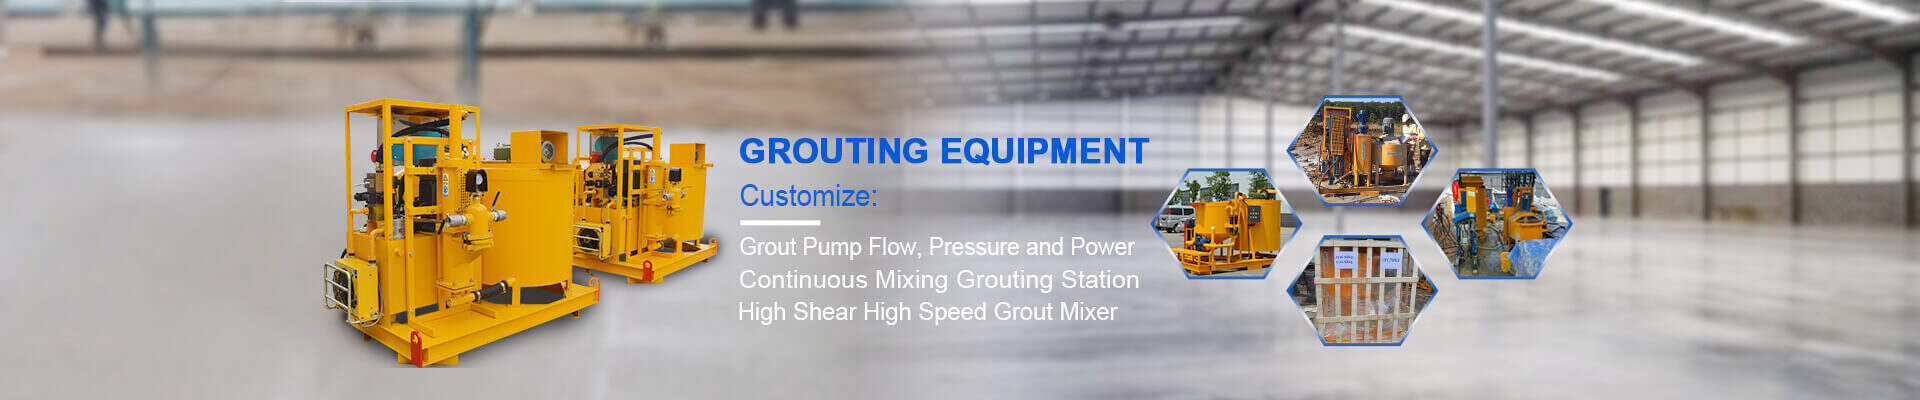 Grout plant grout mixing plant grouting injection plant grout pump grout grout mixer and agitator